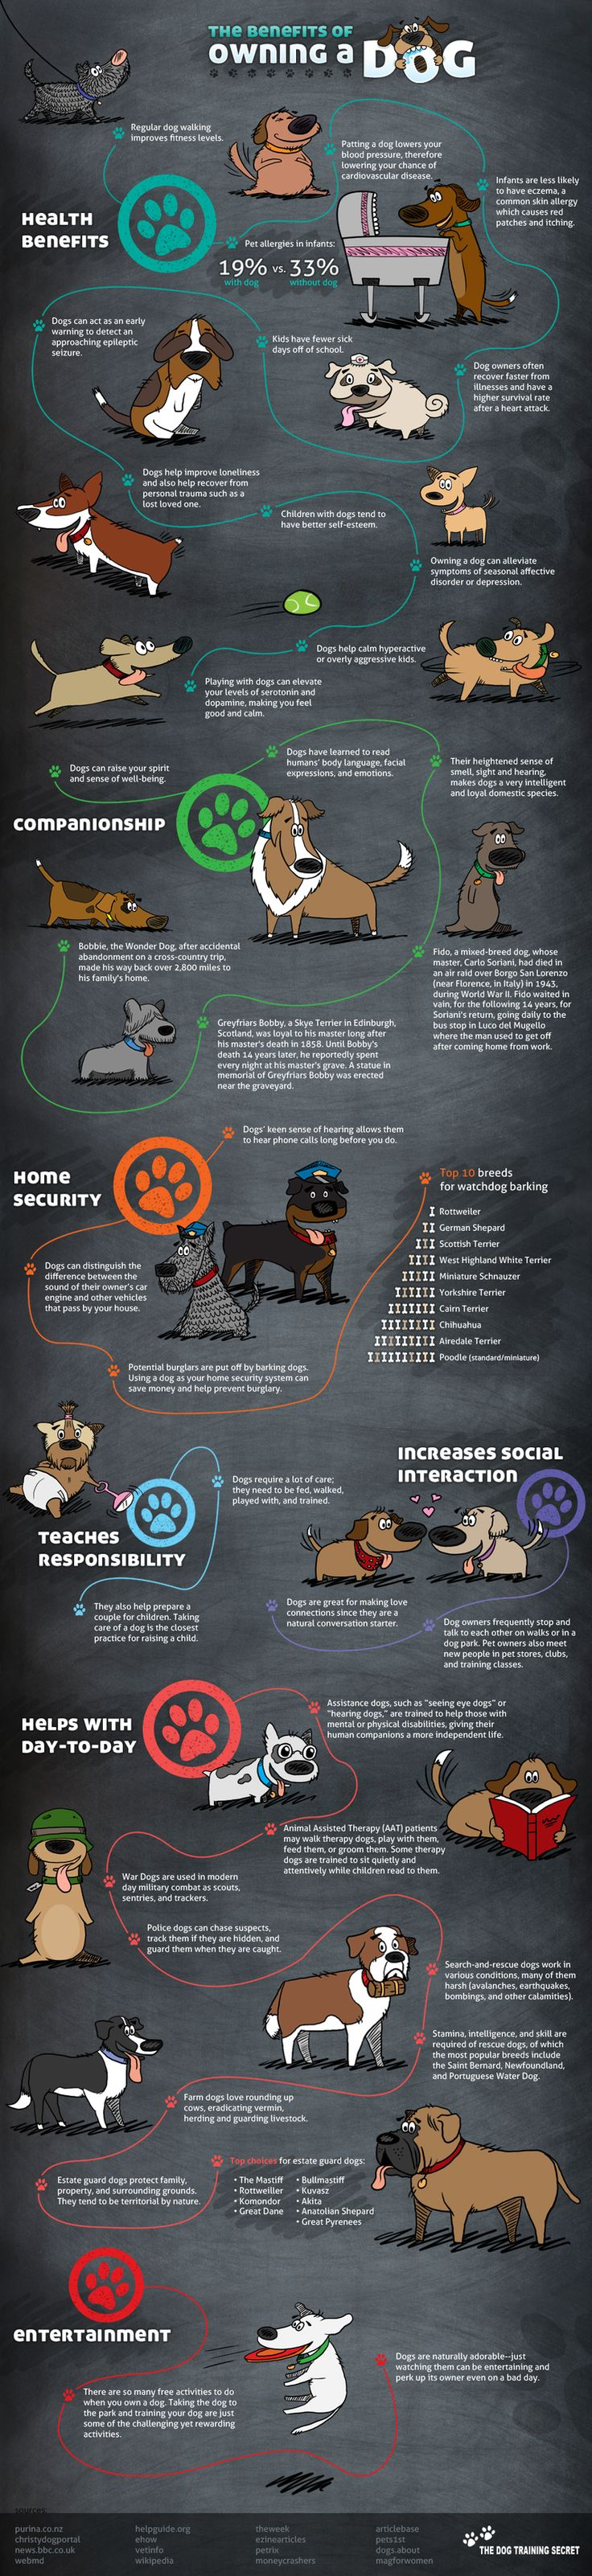 The Benefits of Owning a Dog (or being owned BY a Dog)